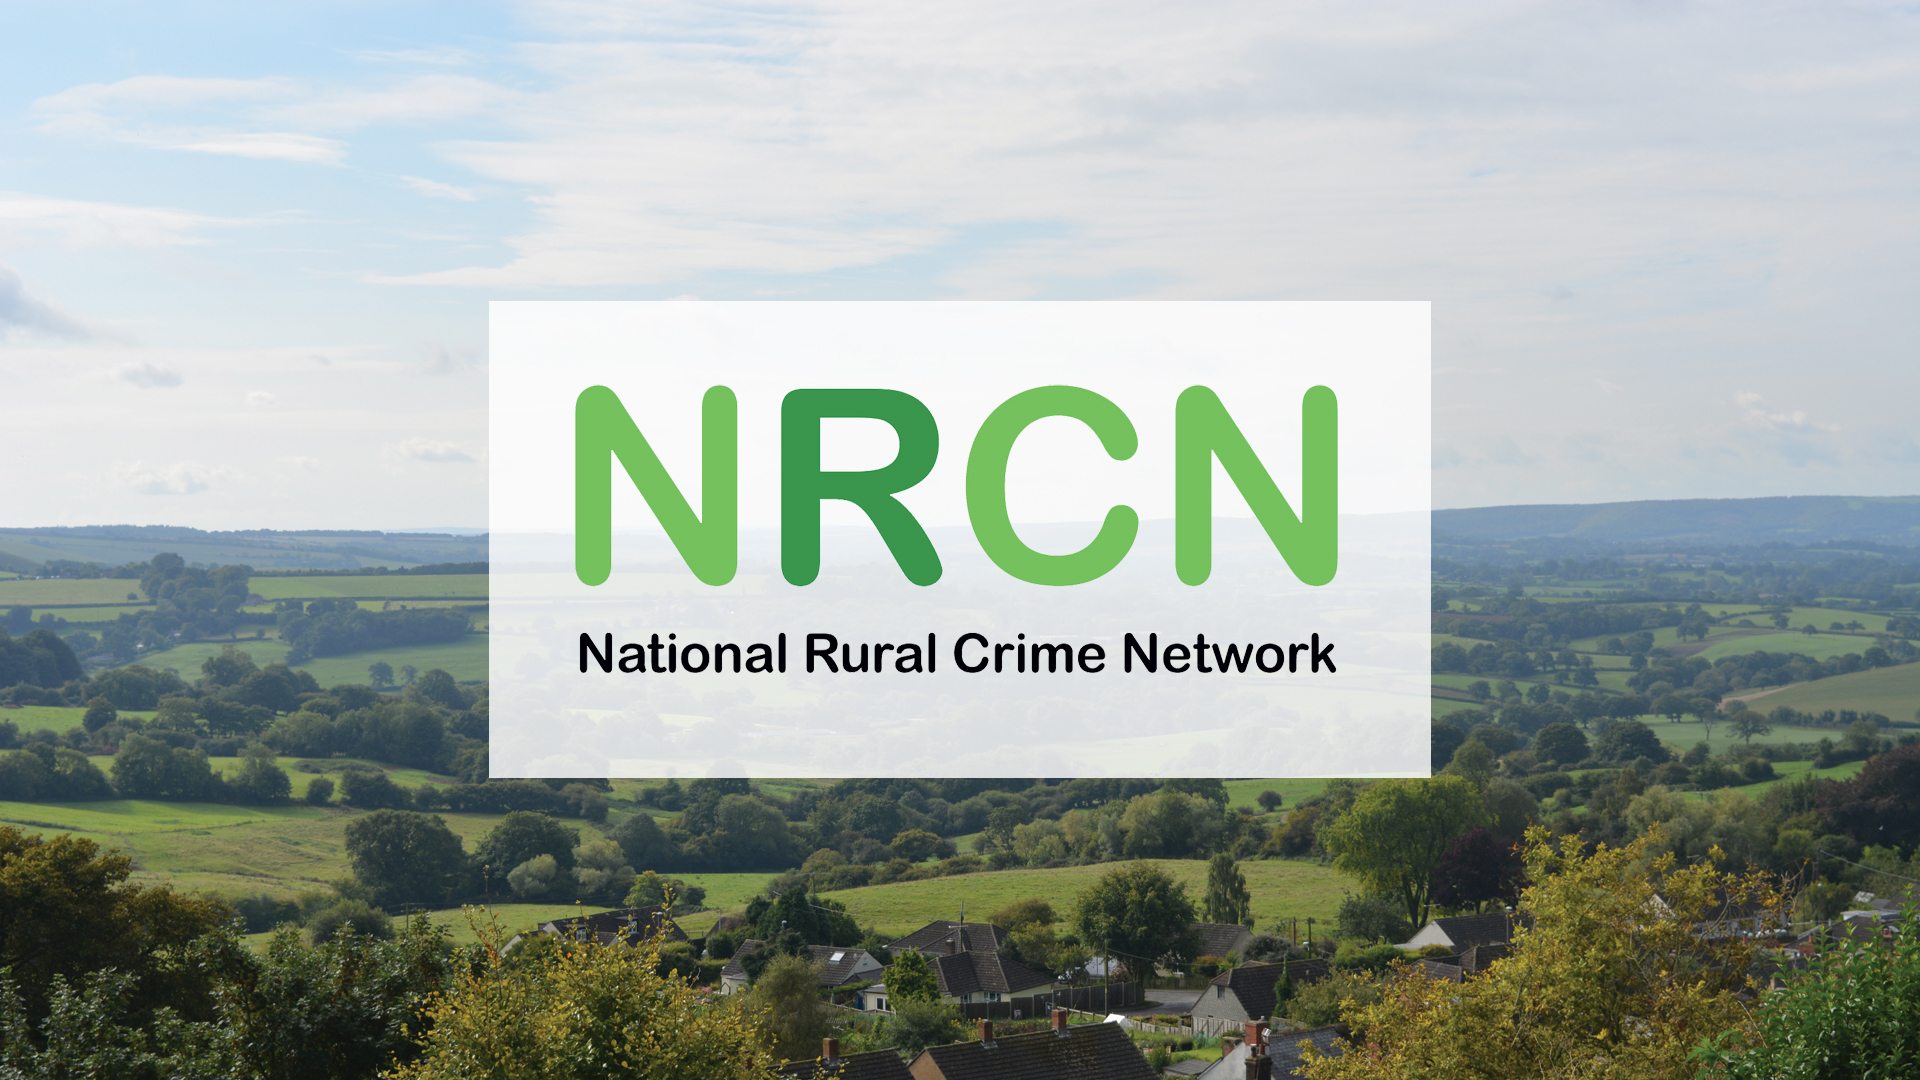 National Rural Crime Network